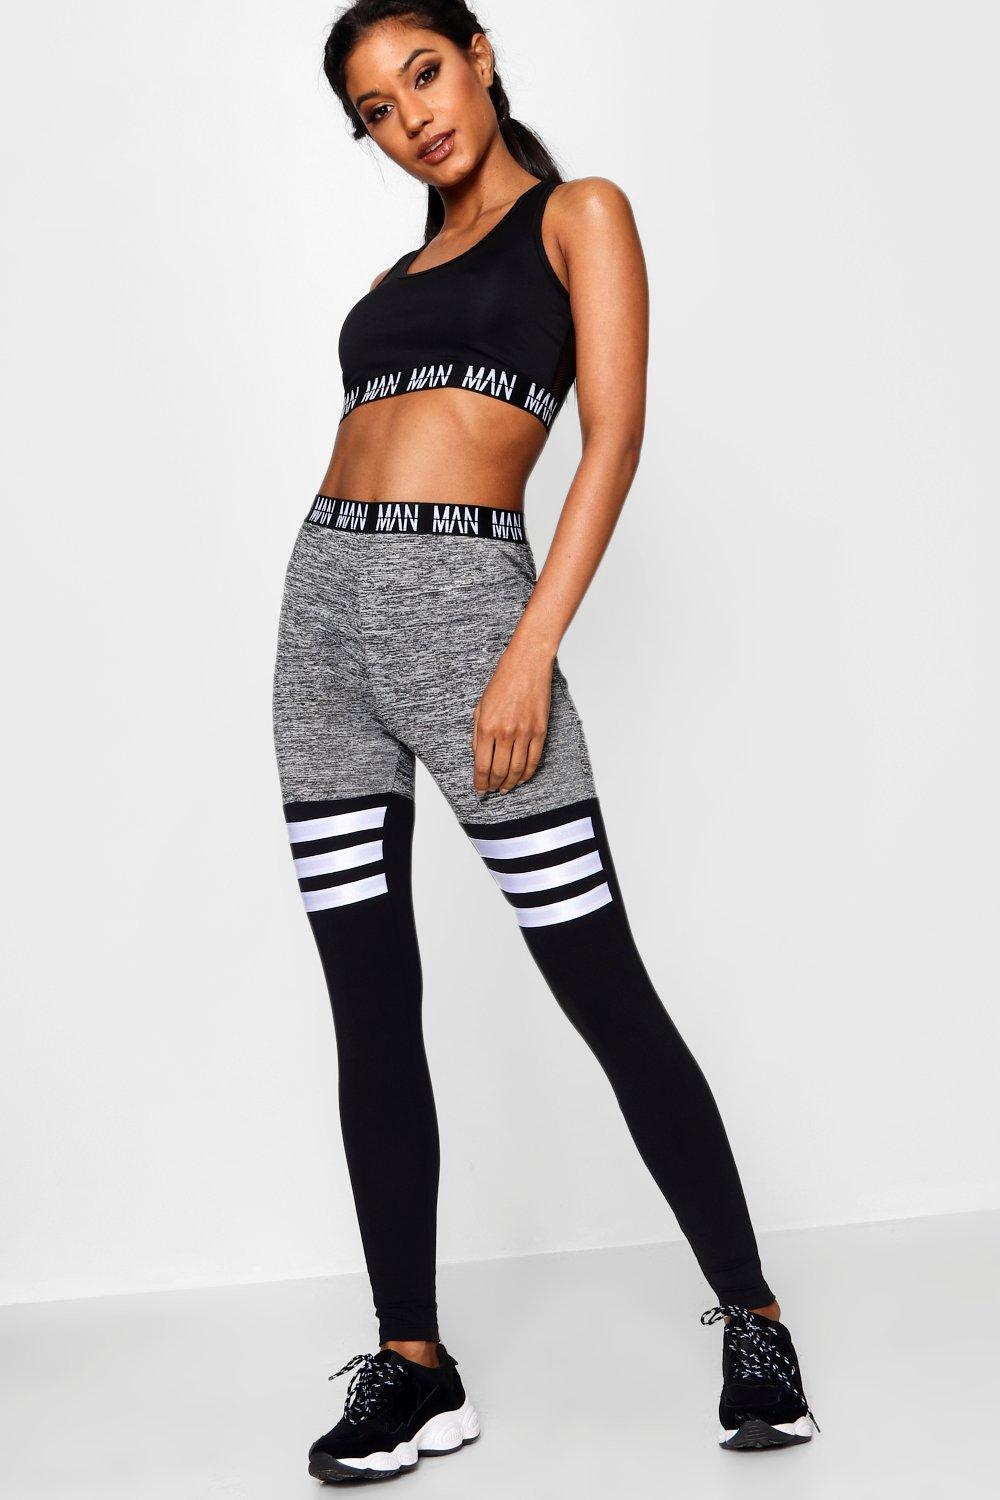 Panel Fit grey Gym 'MAN' Stripe Legging Detail wPUqSO7P